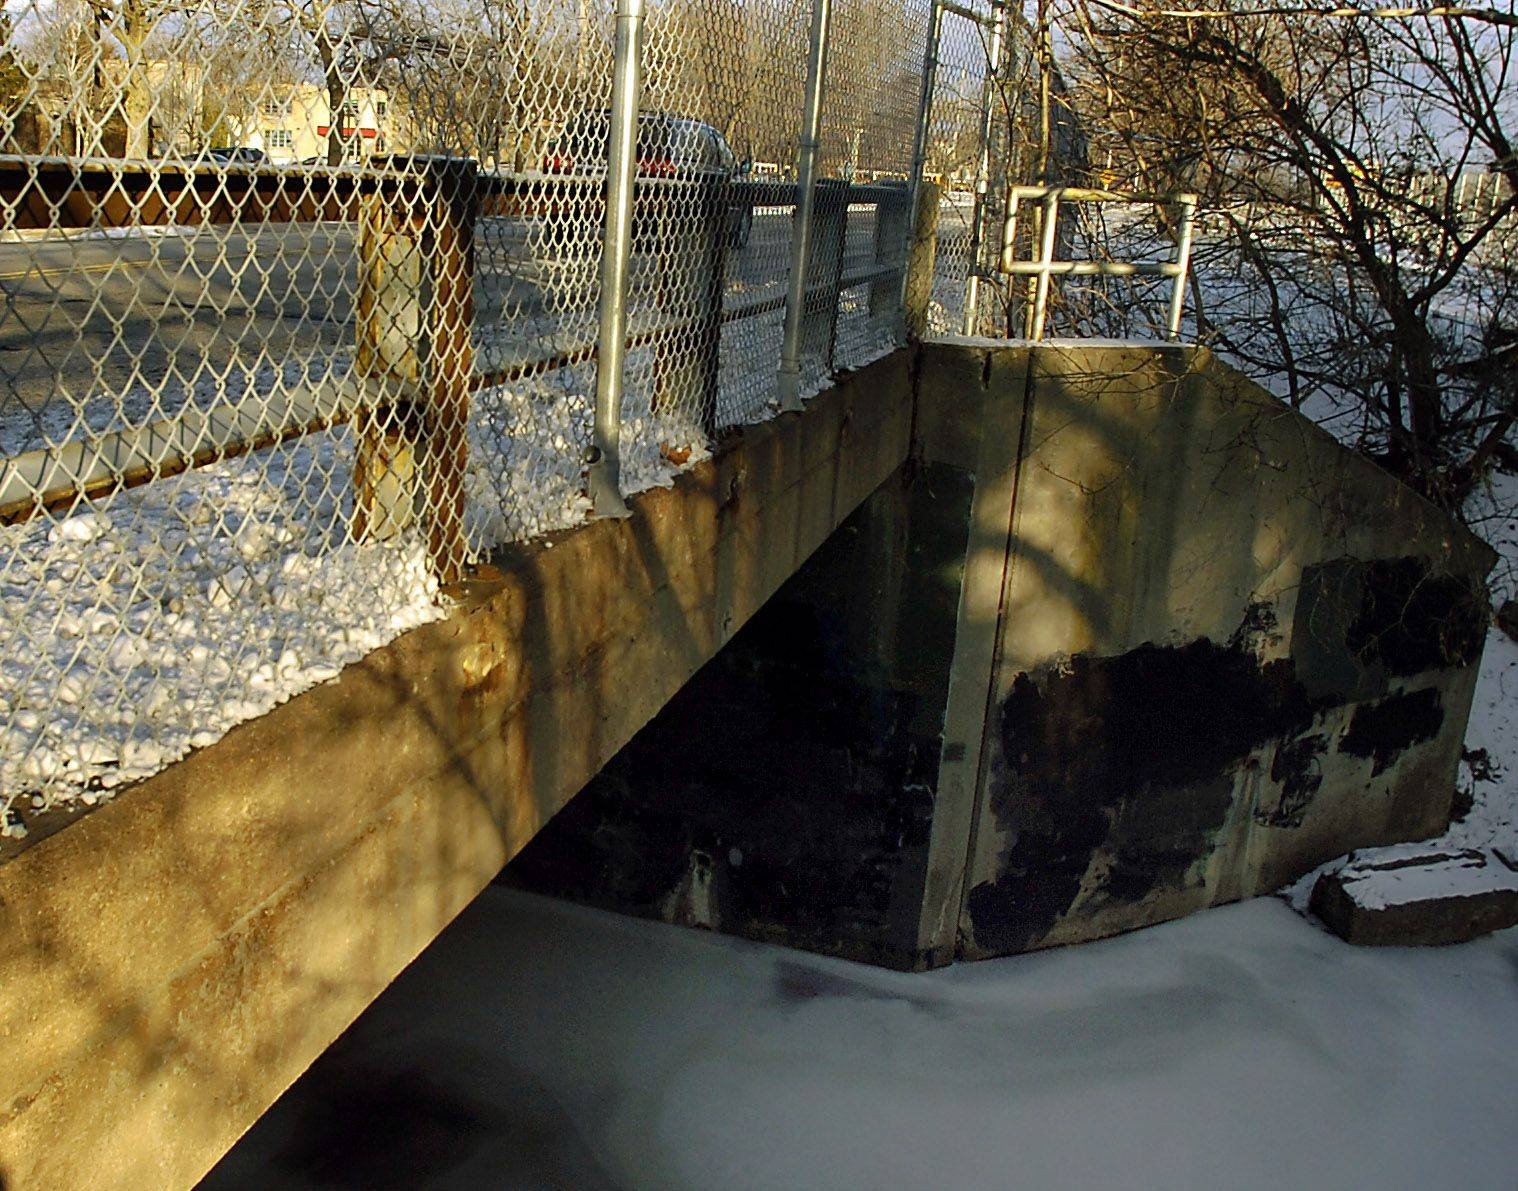 Towns lag in bridge repairs